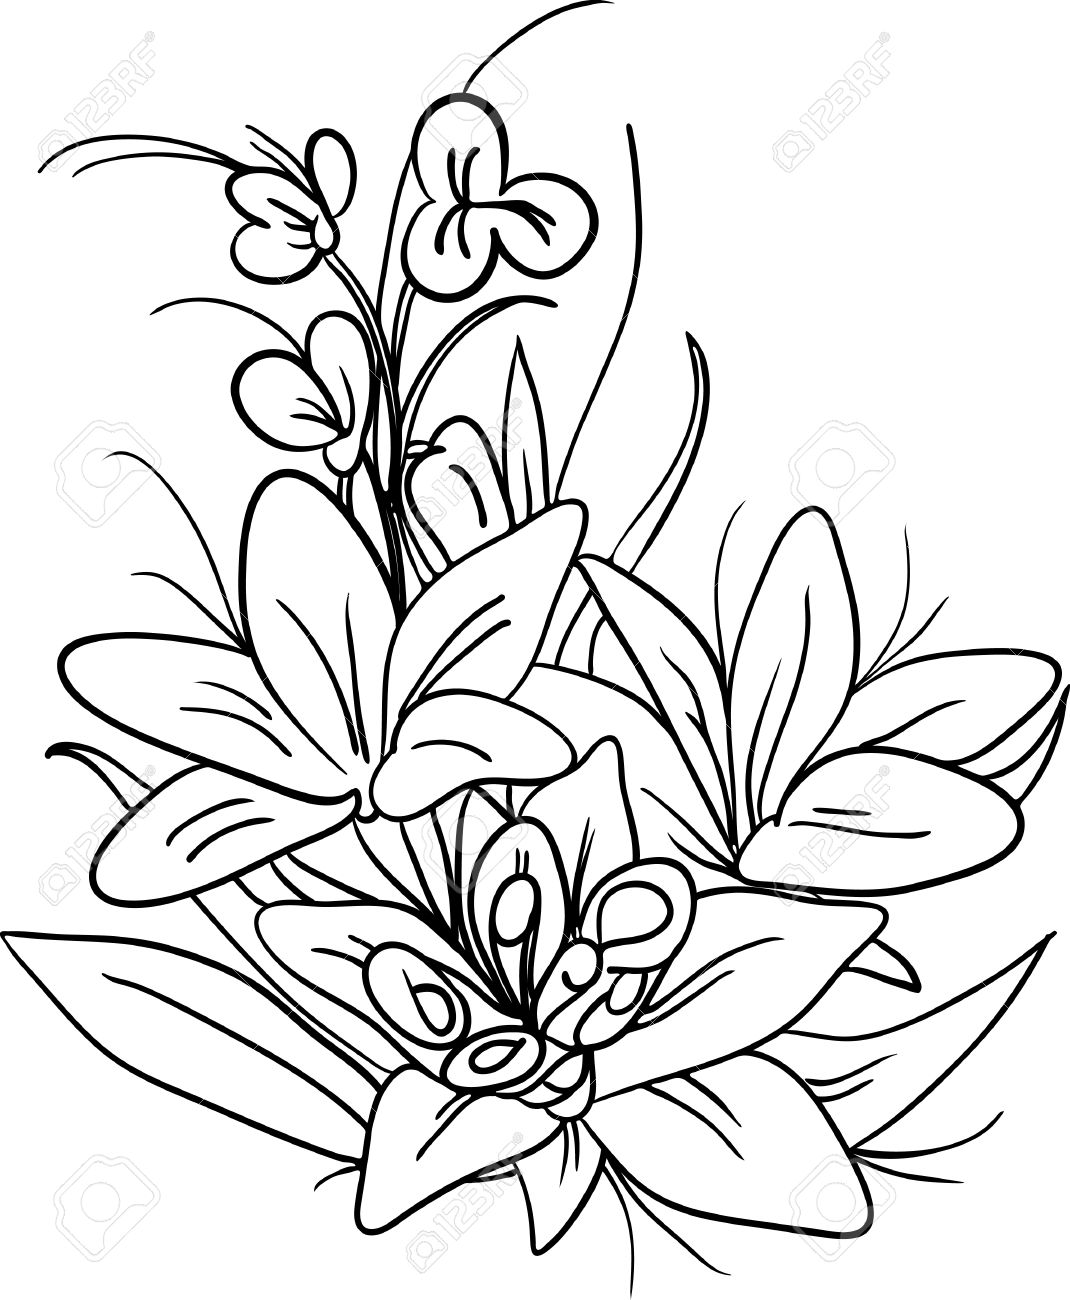 1070x1300 Bouquet Of Flowers Drawing Black And White